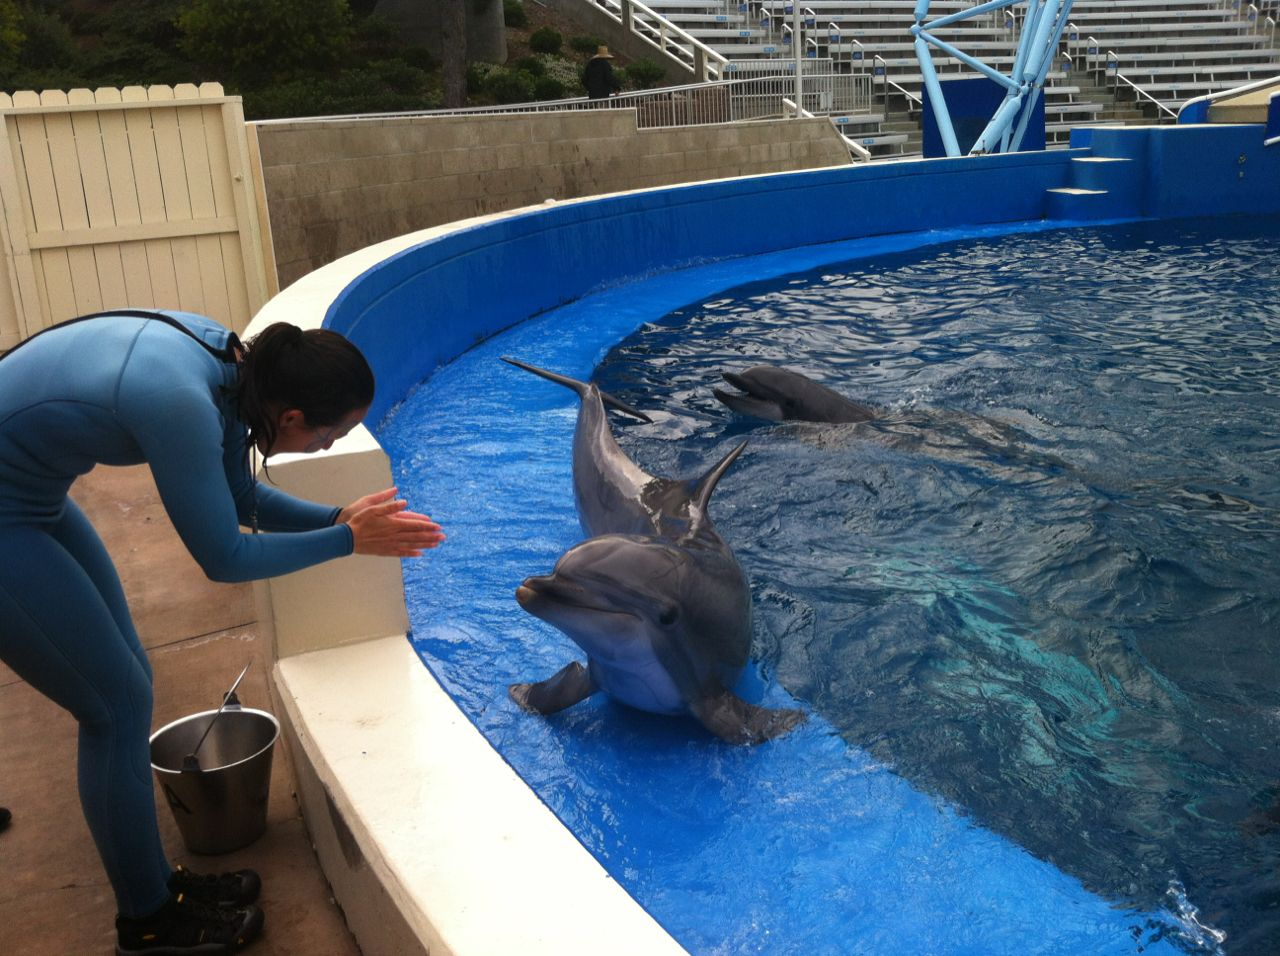 Behind the scenes fun at SeaWorld's Blue Horizons show